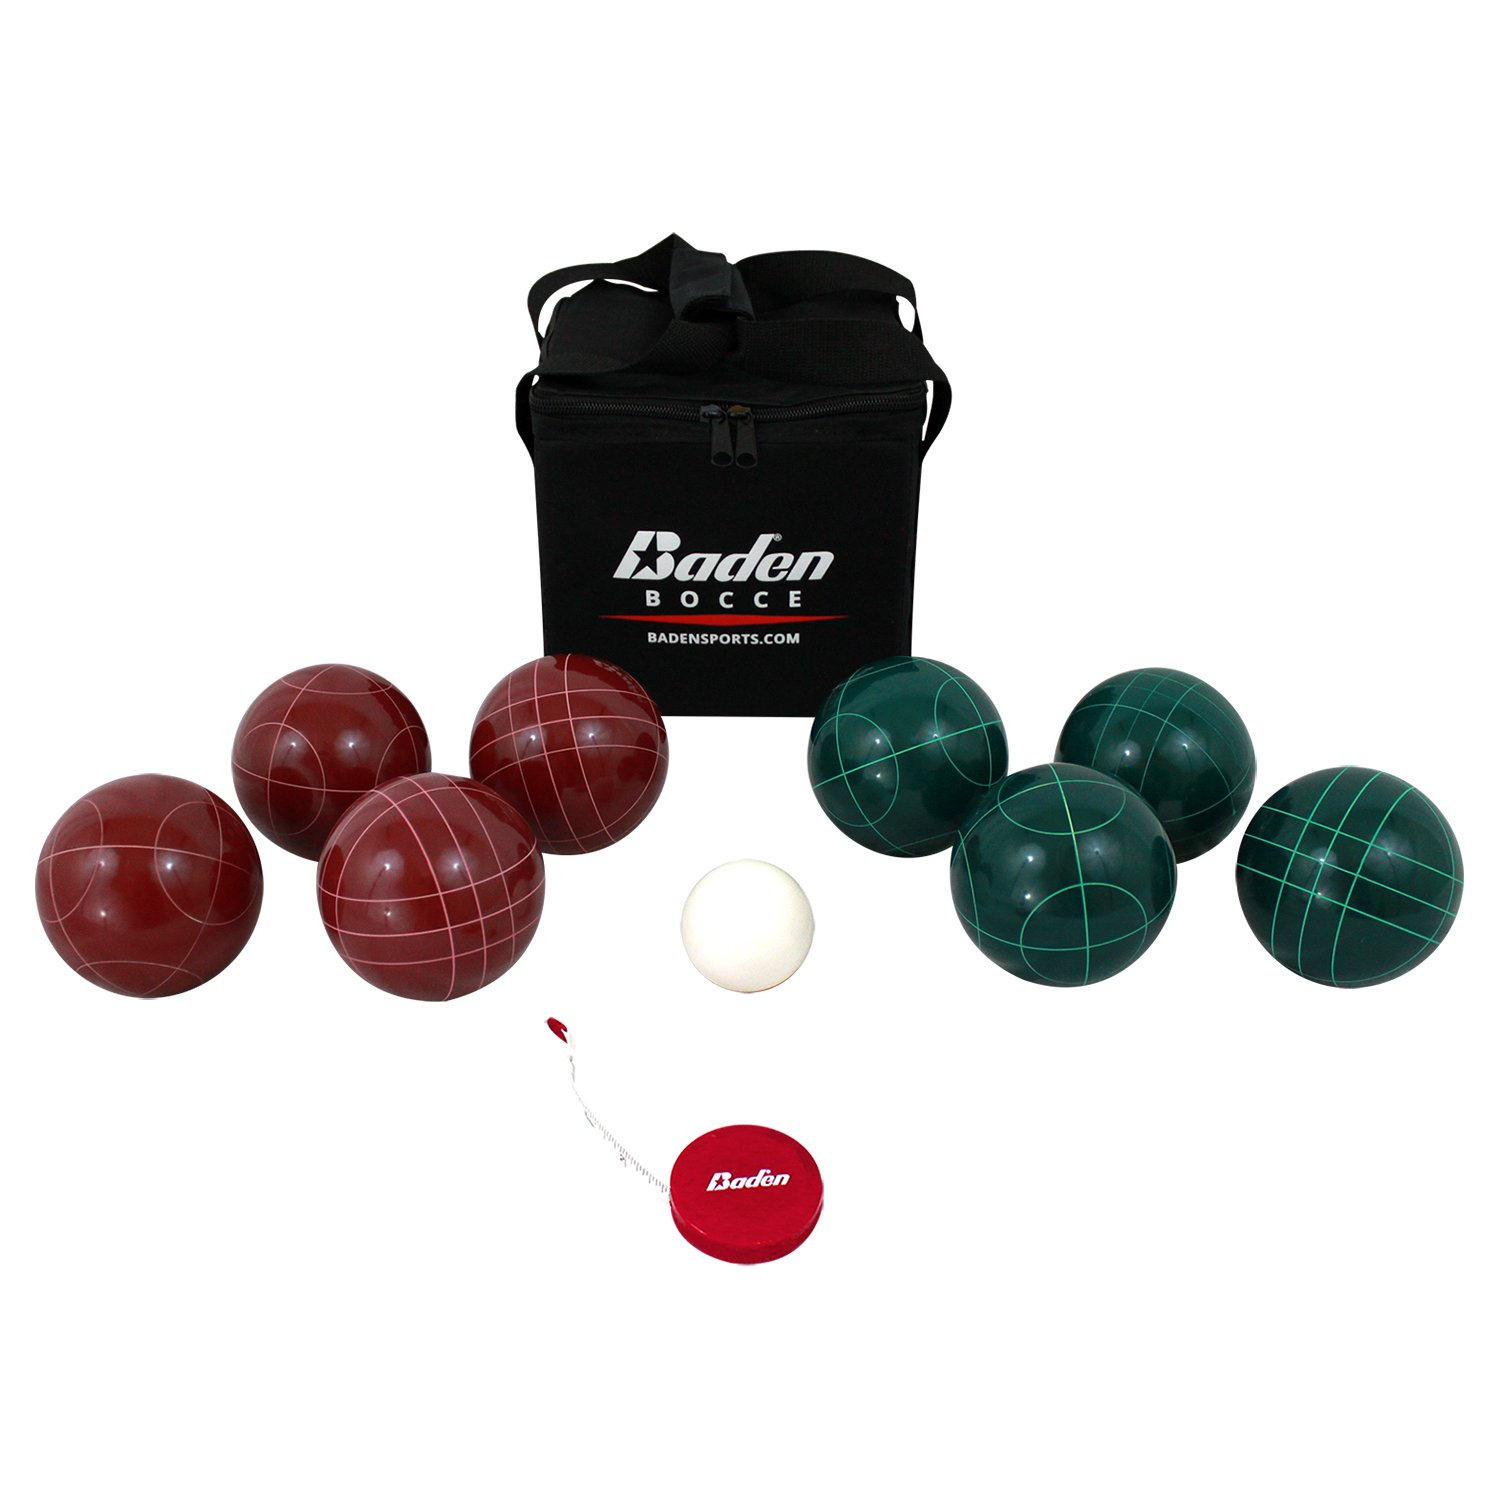 Baden Champions 90mm Bocce Ball Set with Carry Case and Measuring Tape by Baden